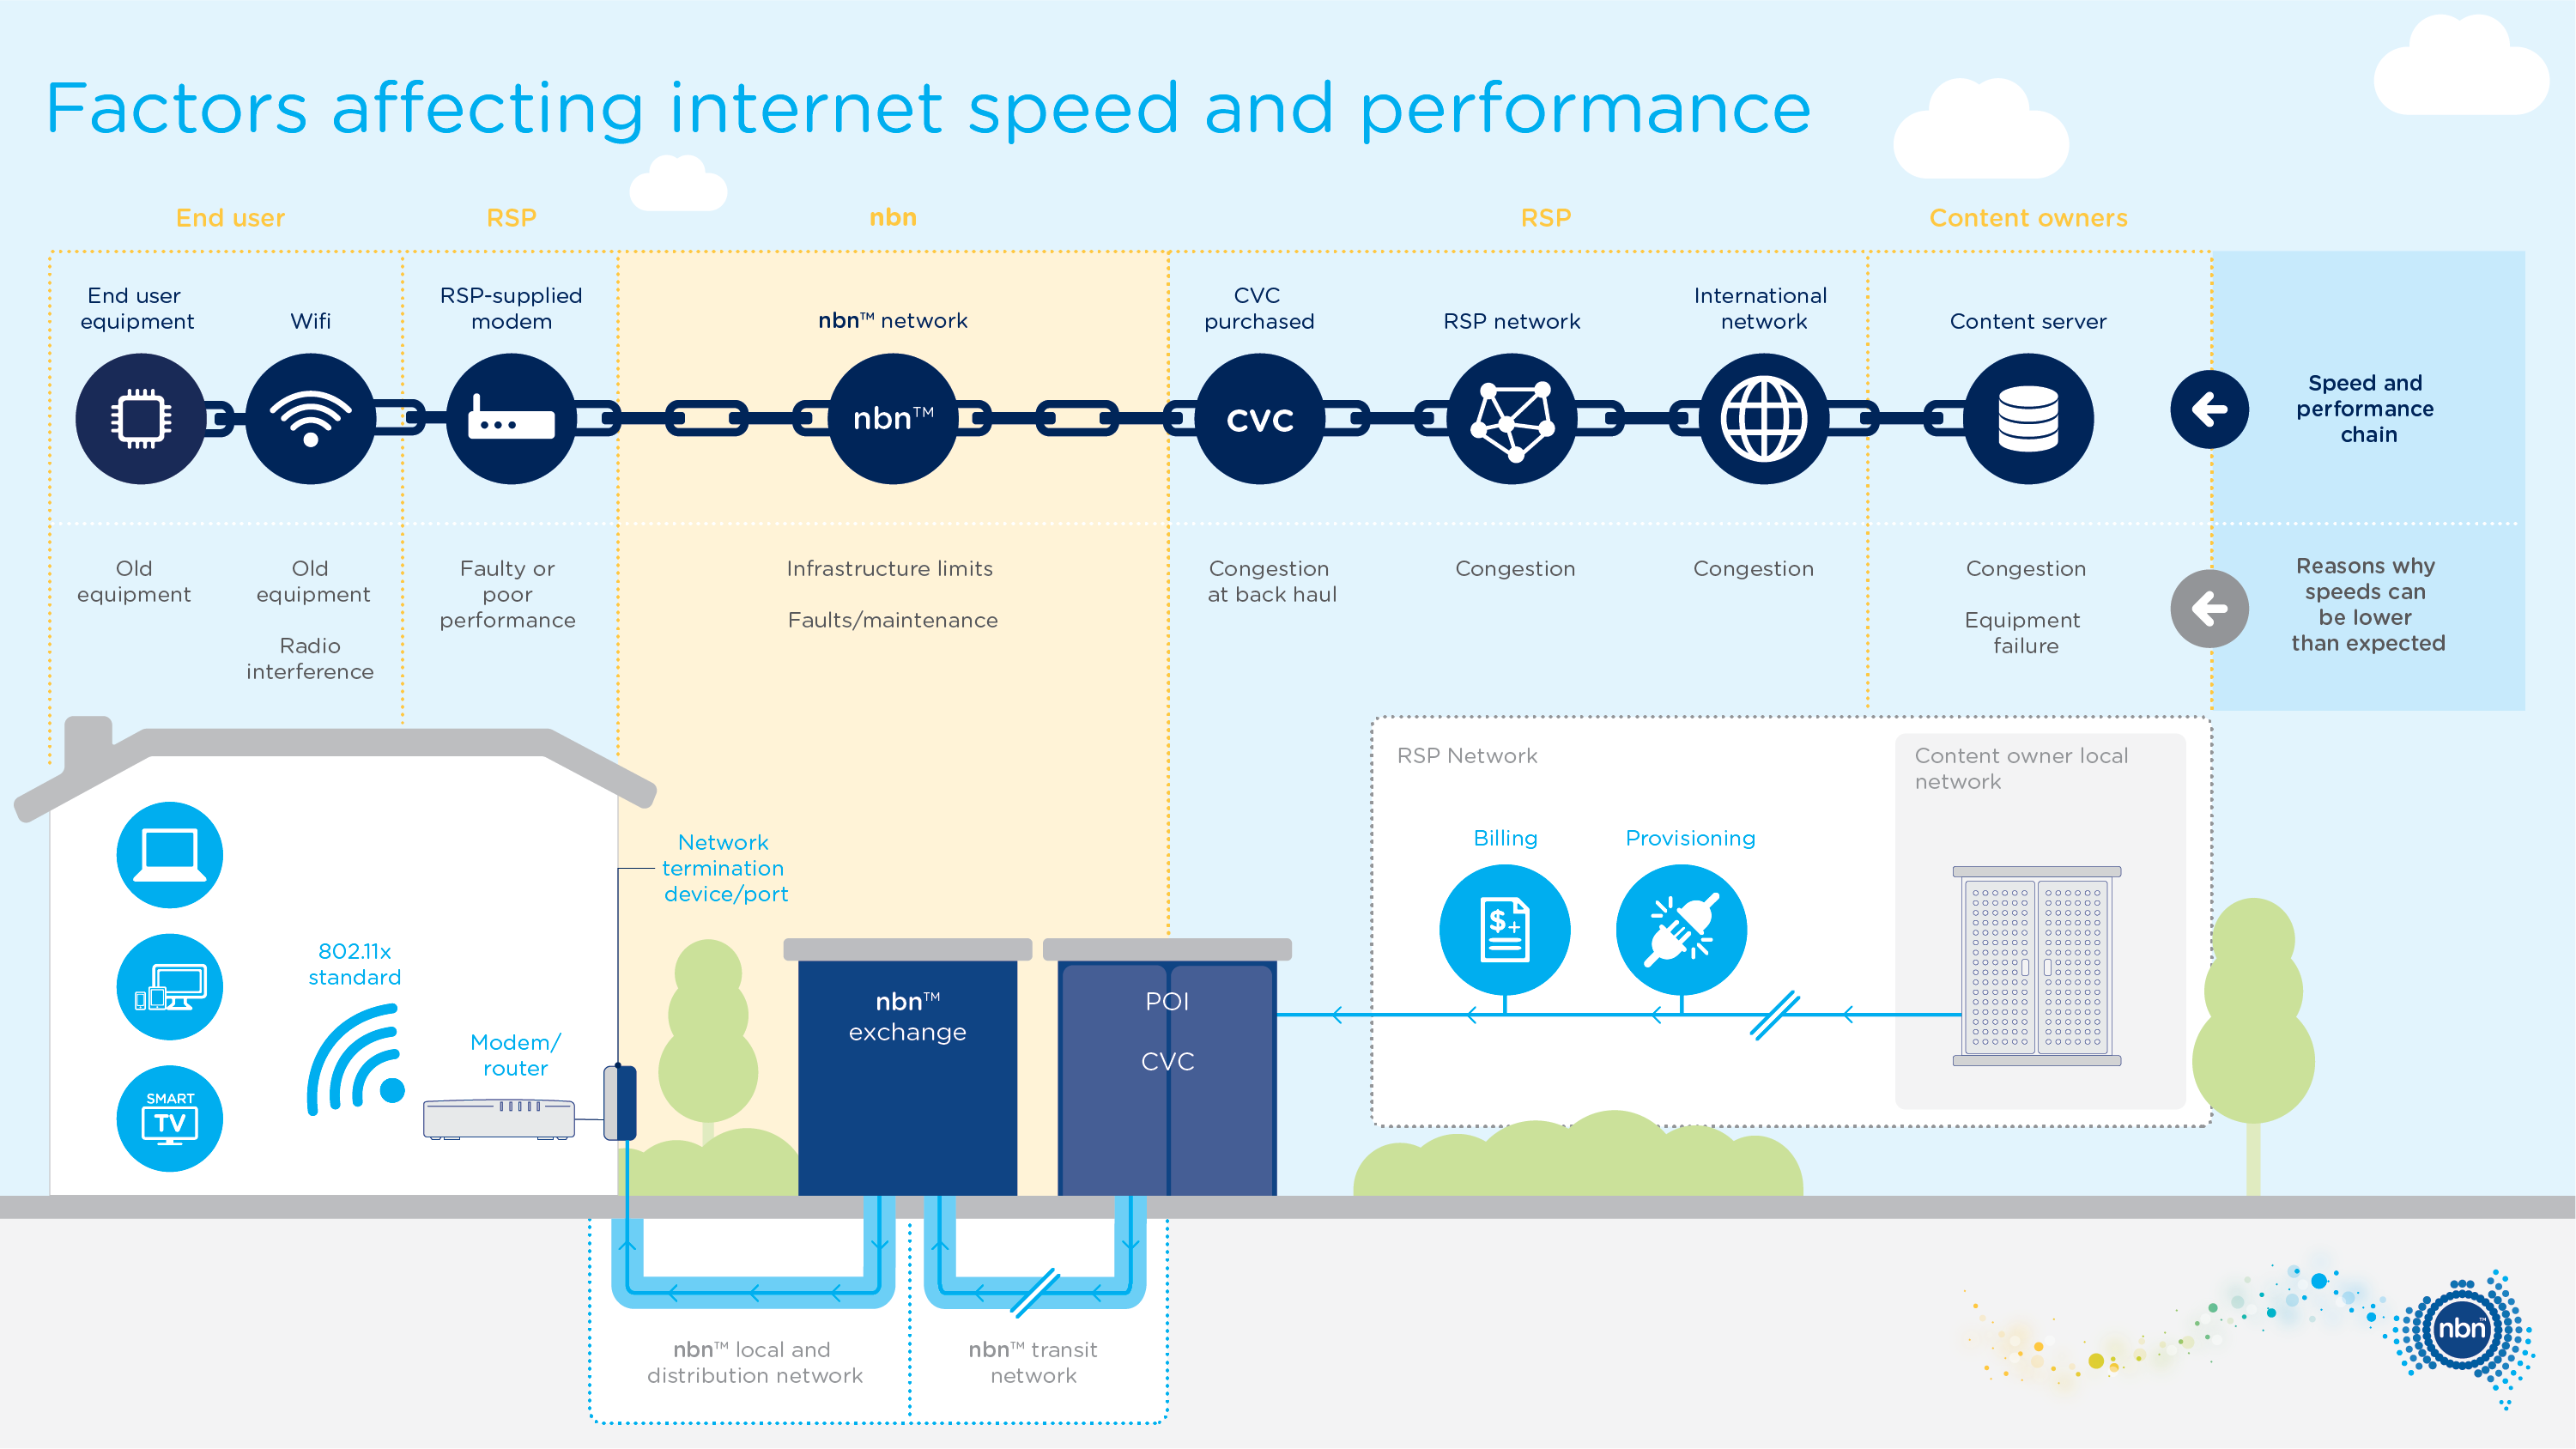 nbn factors affecting internet speed and performance